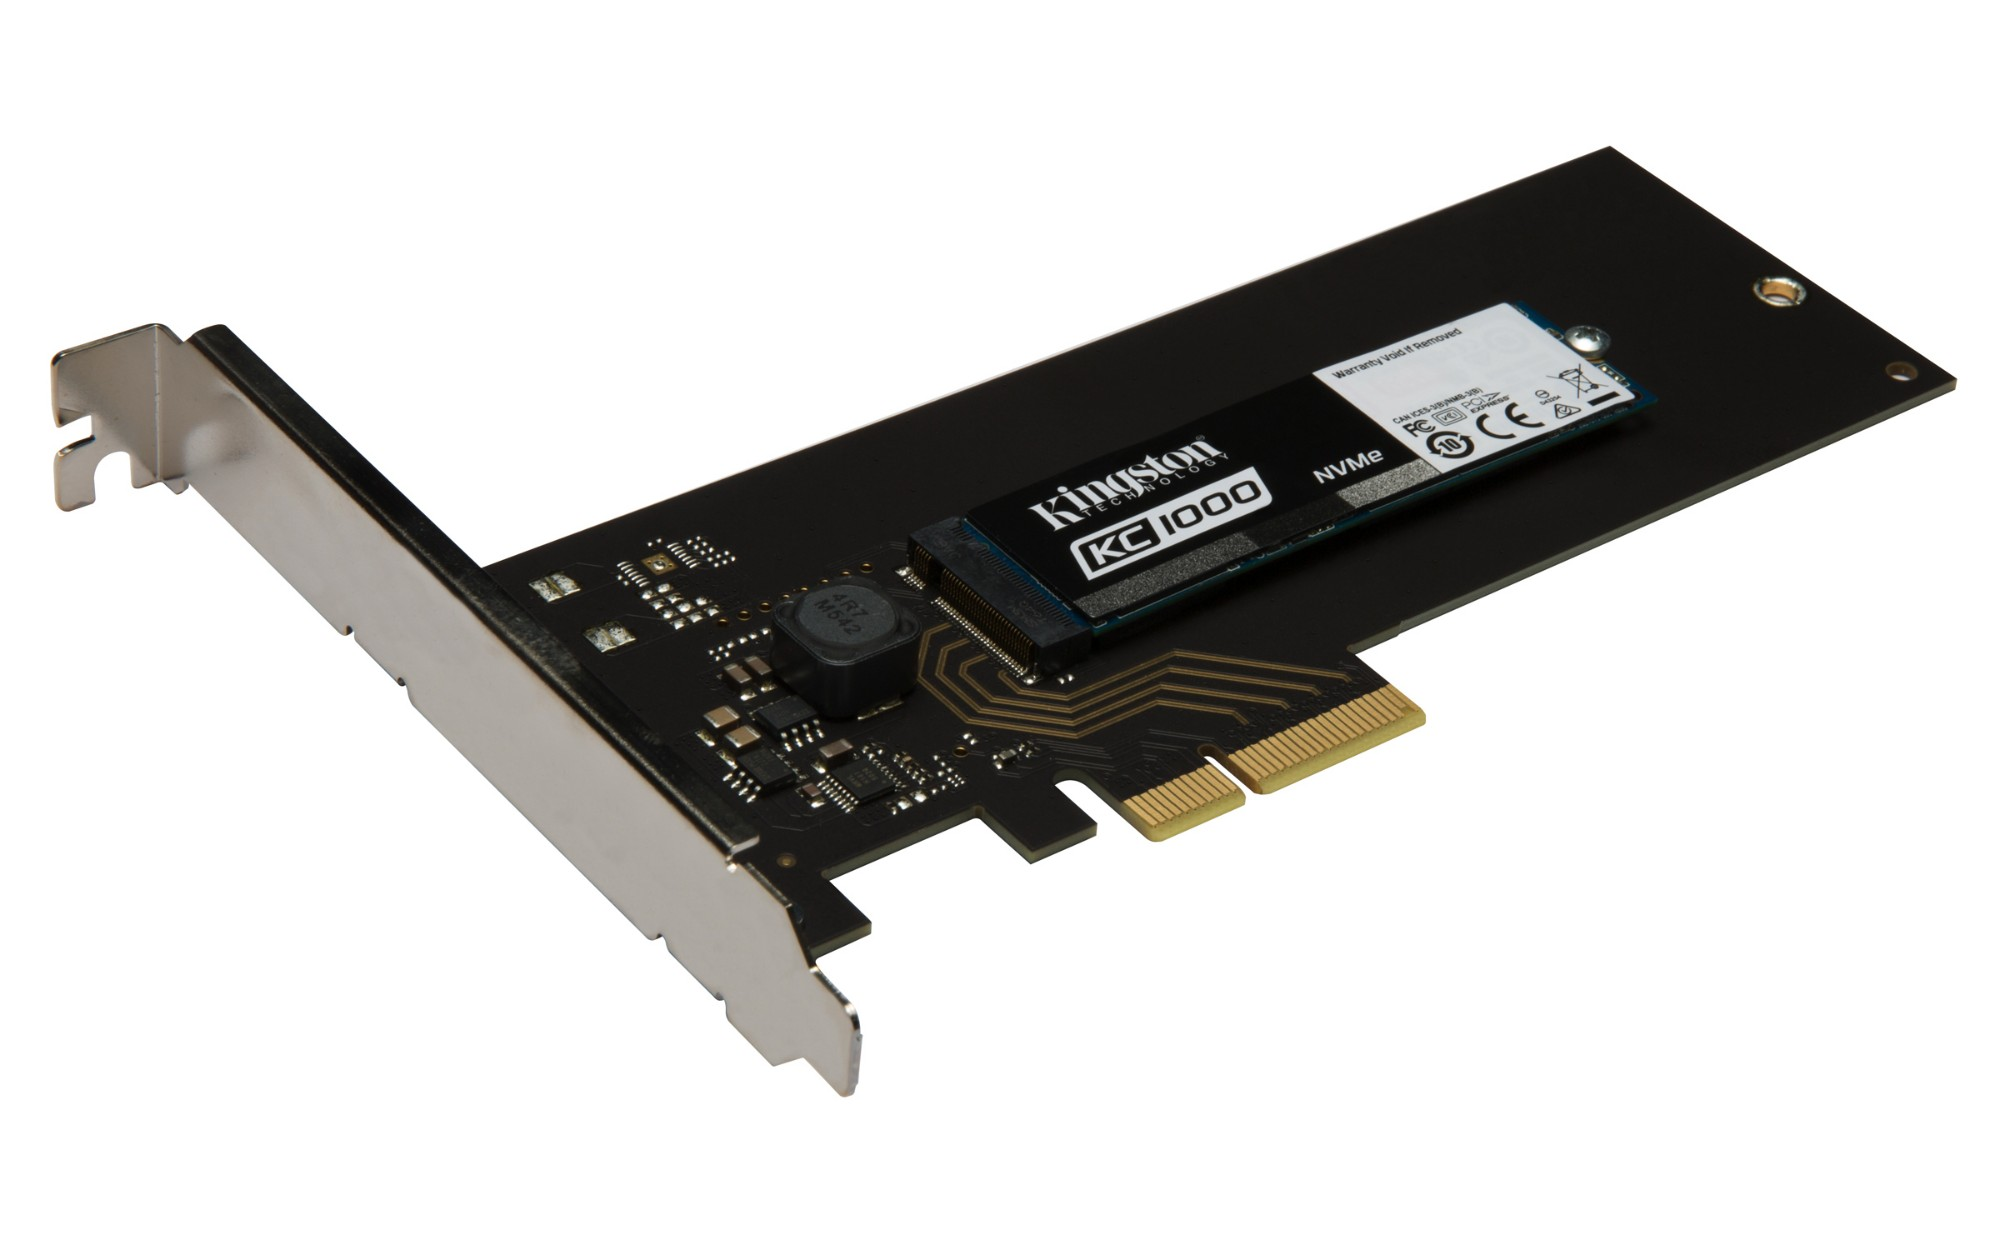 Kingston Technology KC1000 NVMe PCIe SSD 240GB, HHHL PCI Express 3.0 SKC1000H/240G